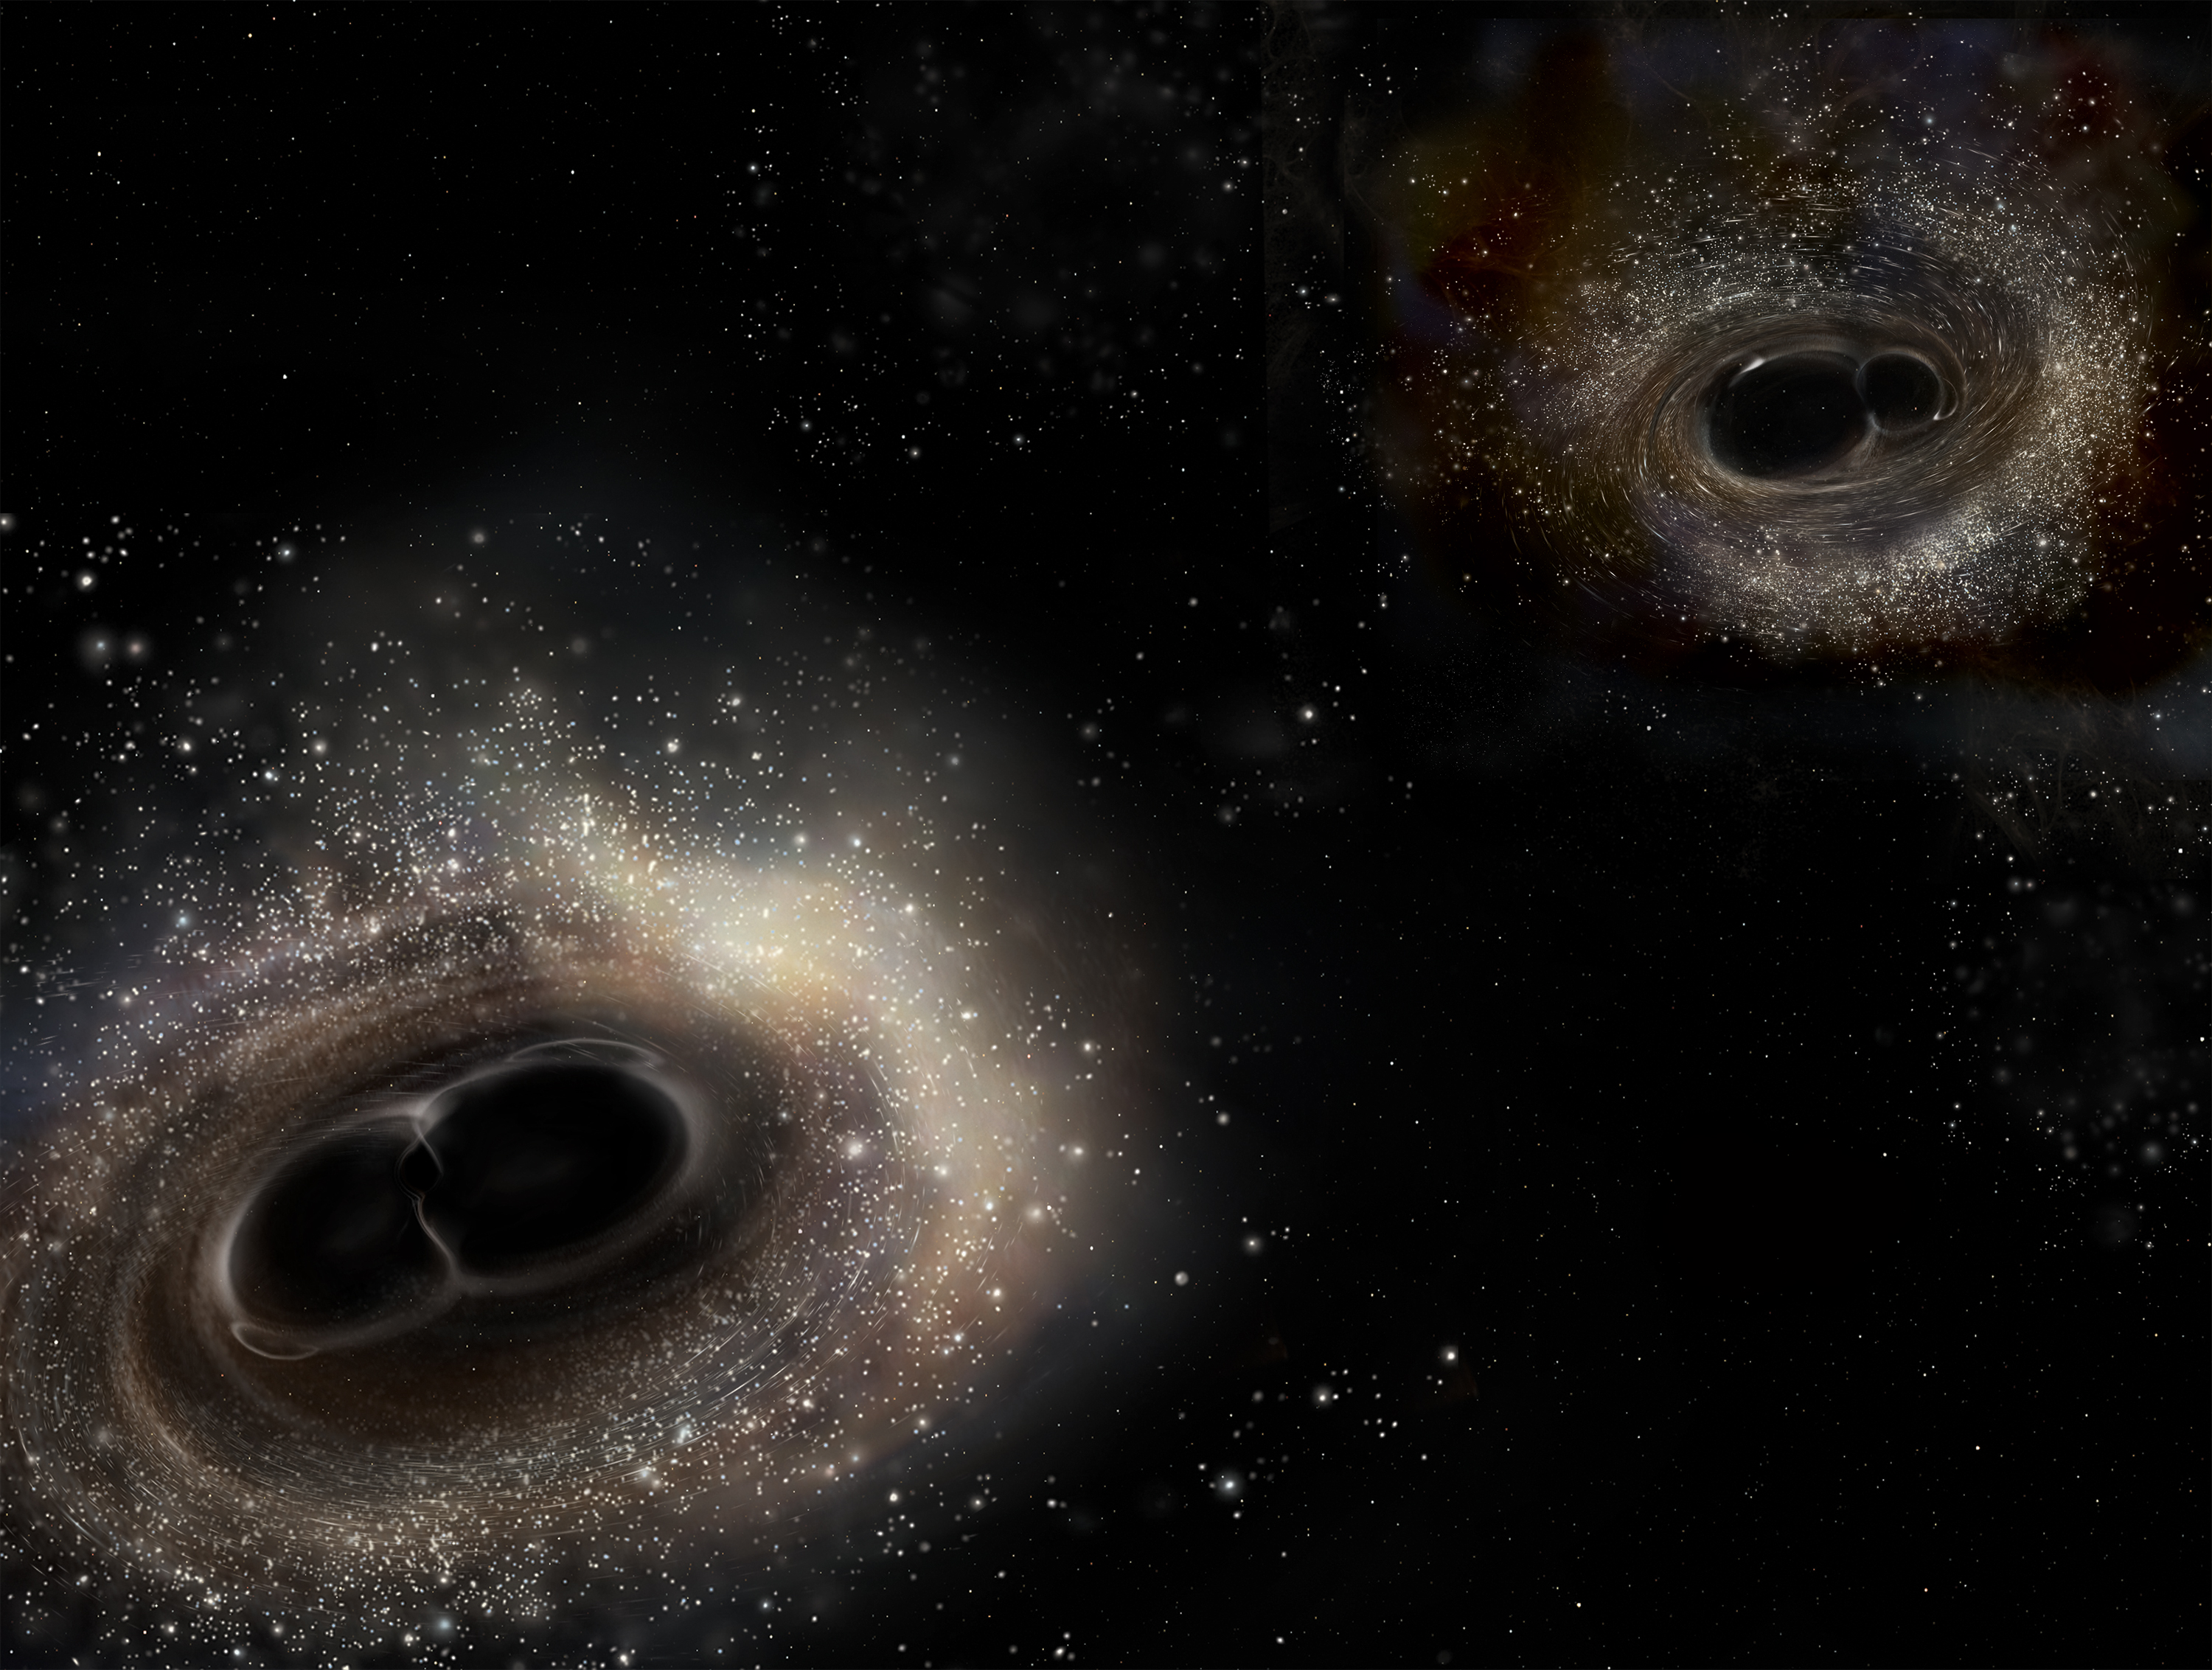 Artist's depiction of GW150914 and GW151226 merging black hole systems